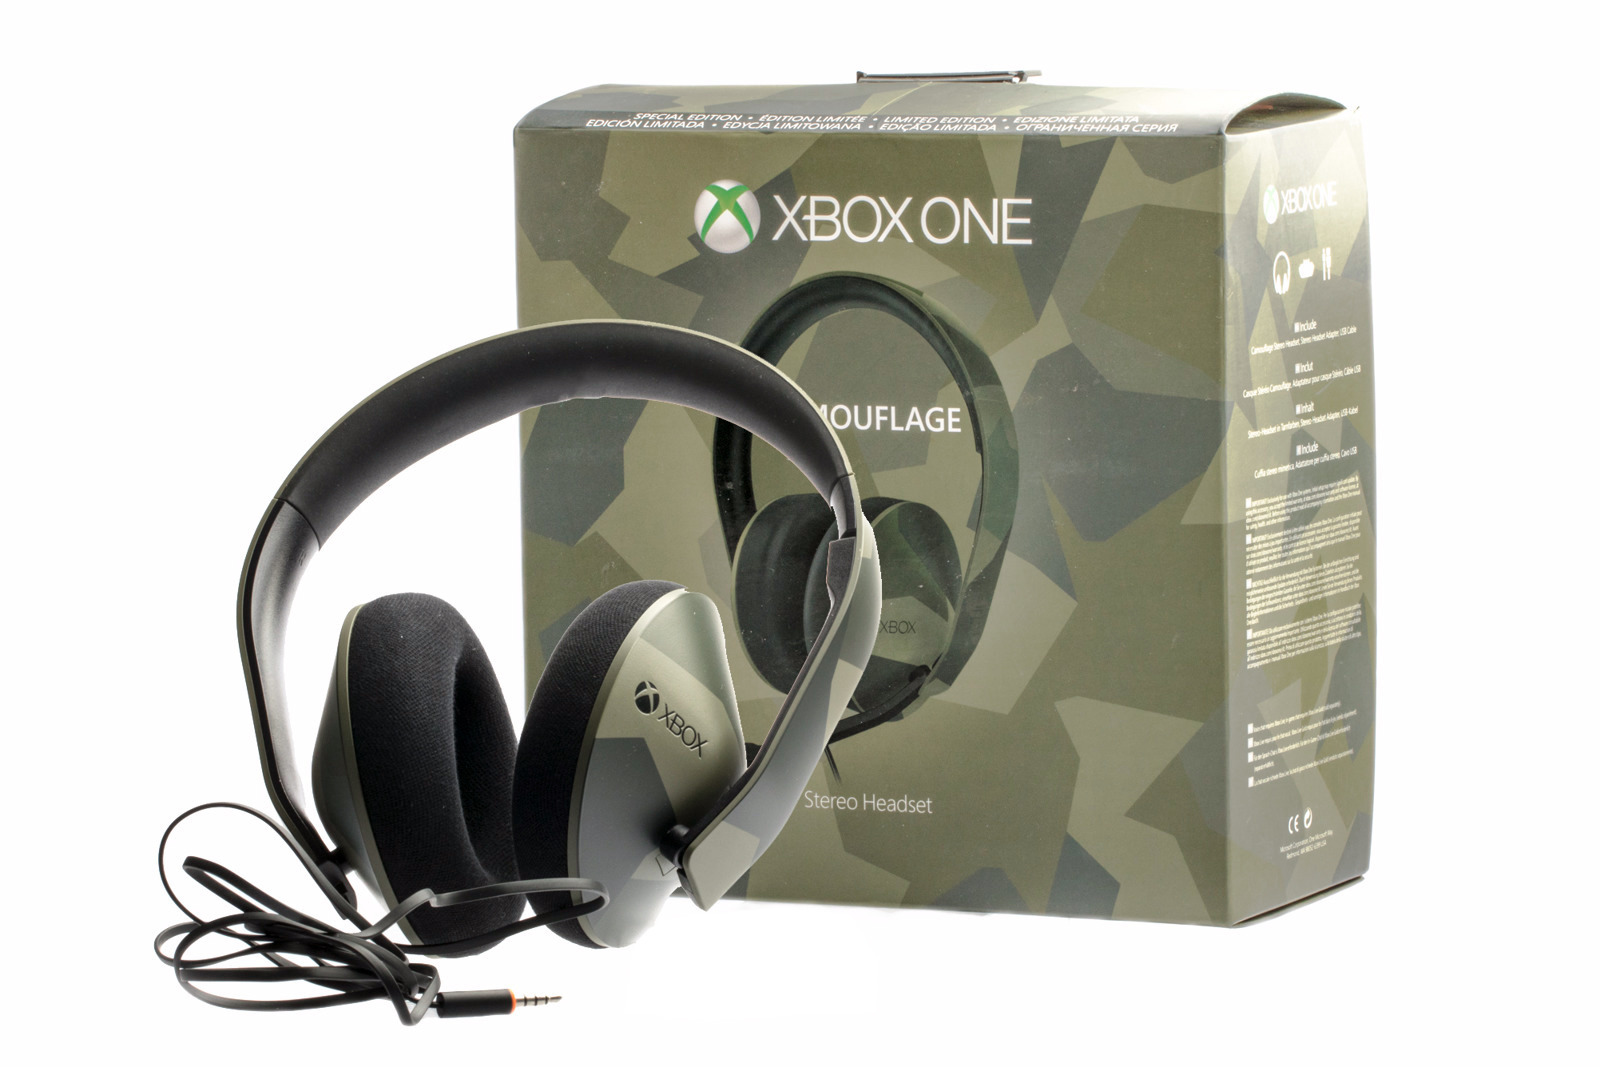 Microsoft Xbox One Camouflage Headset Special Edition with no microphone